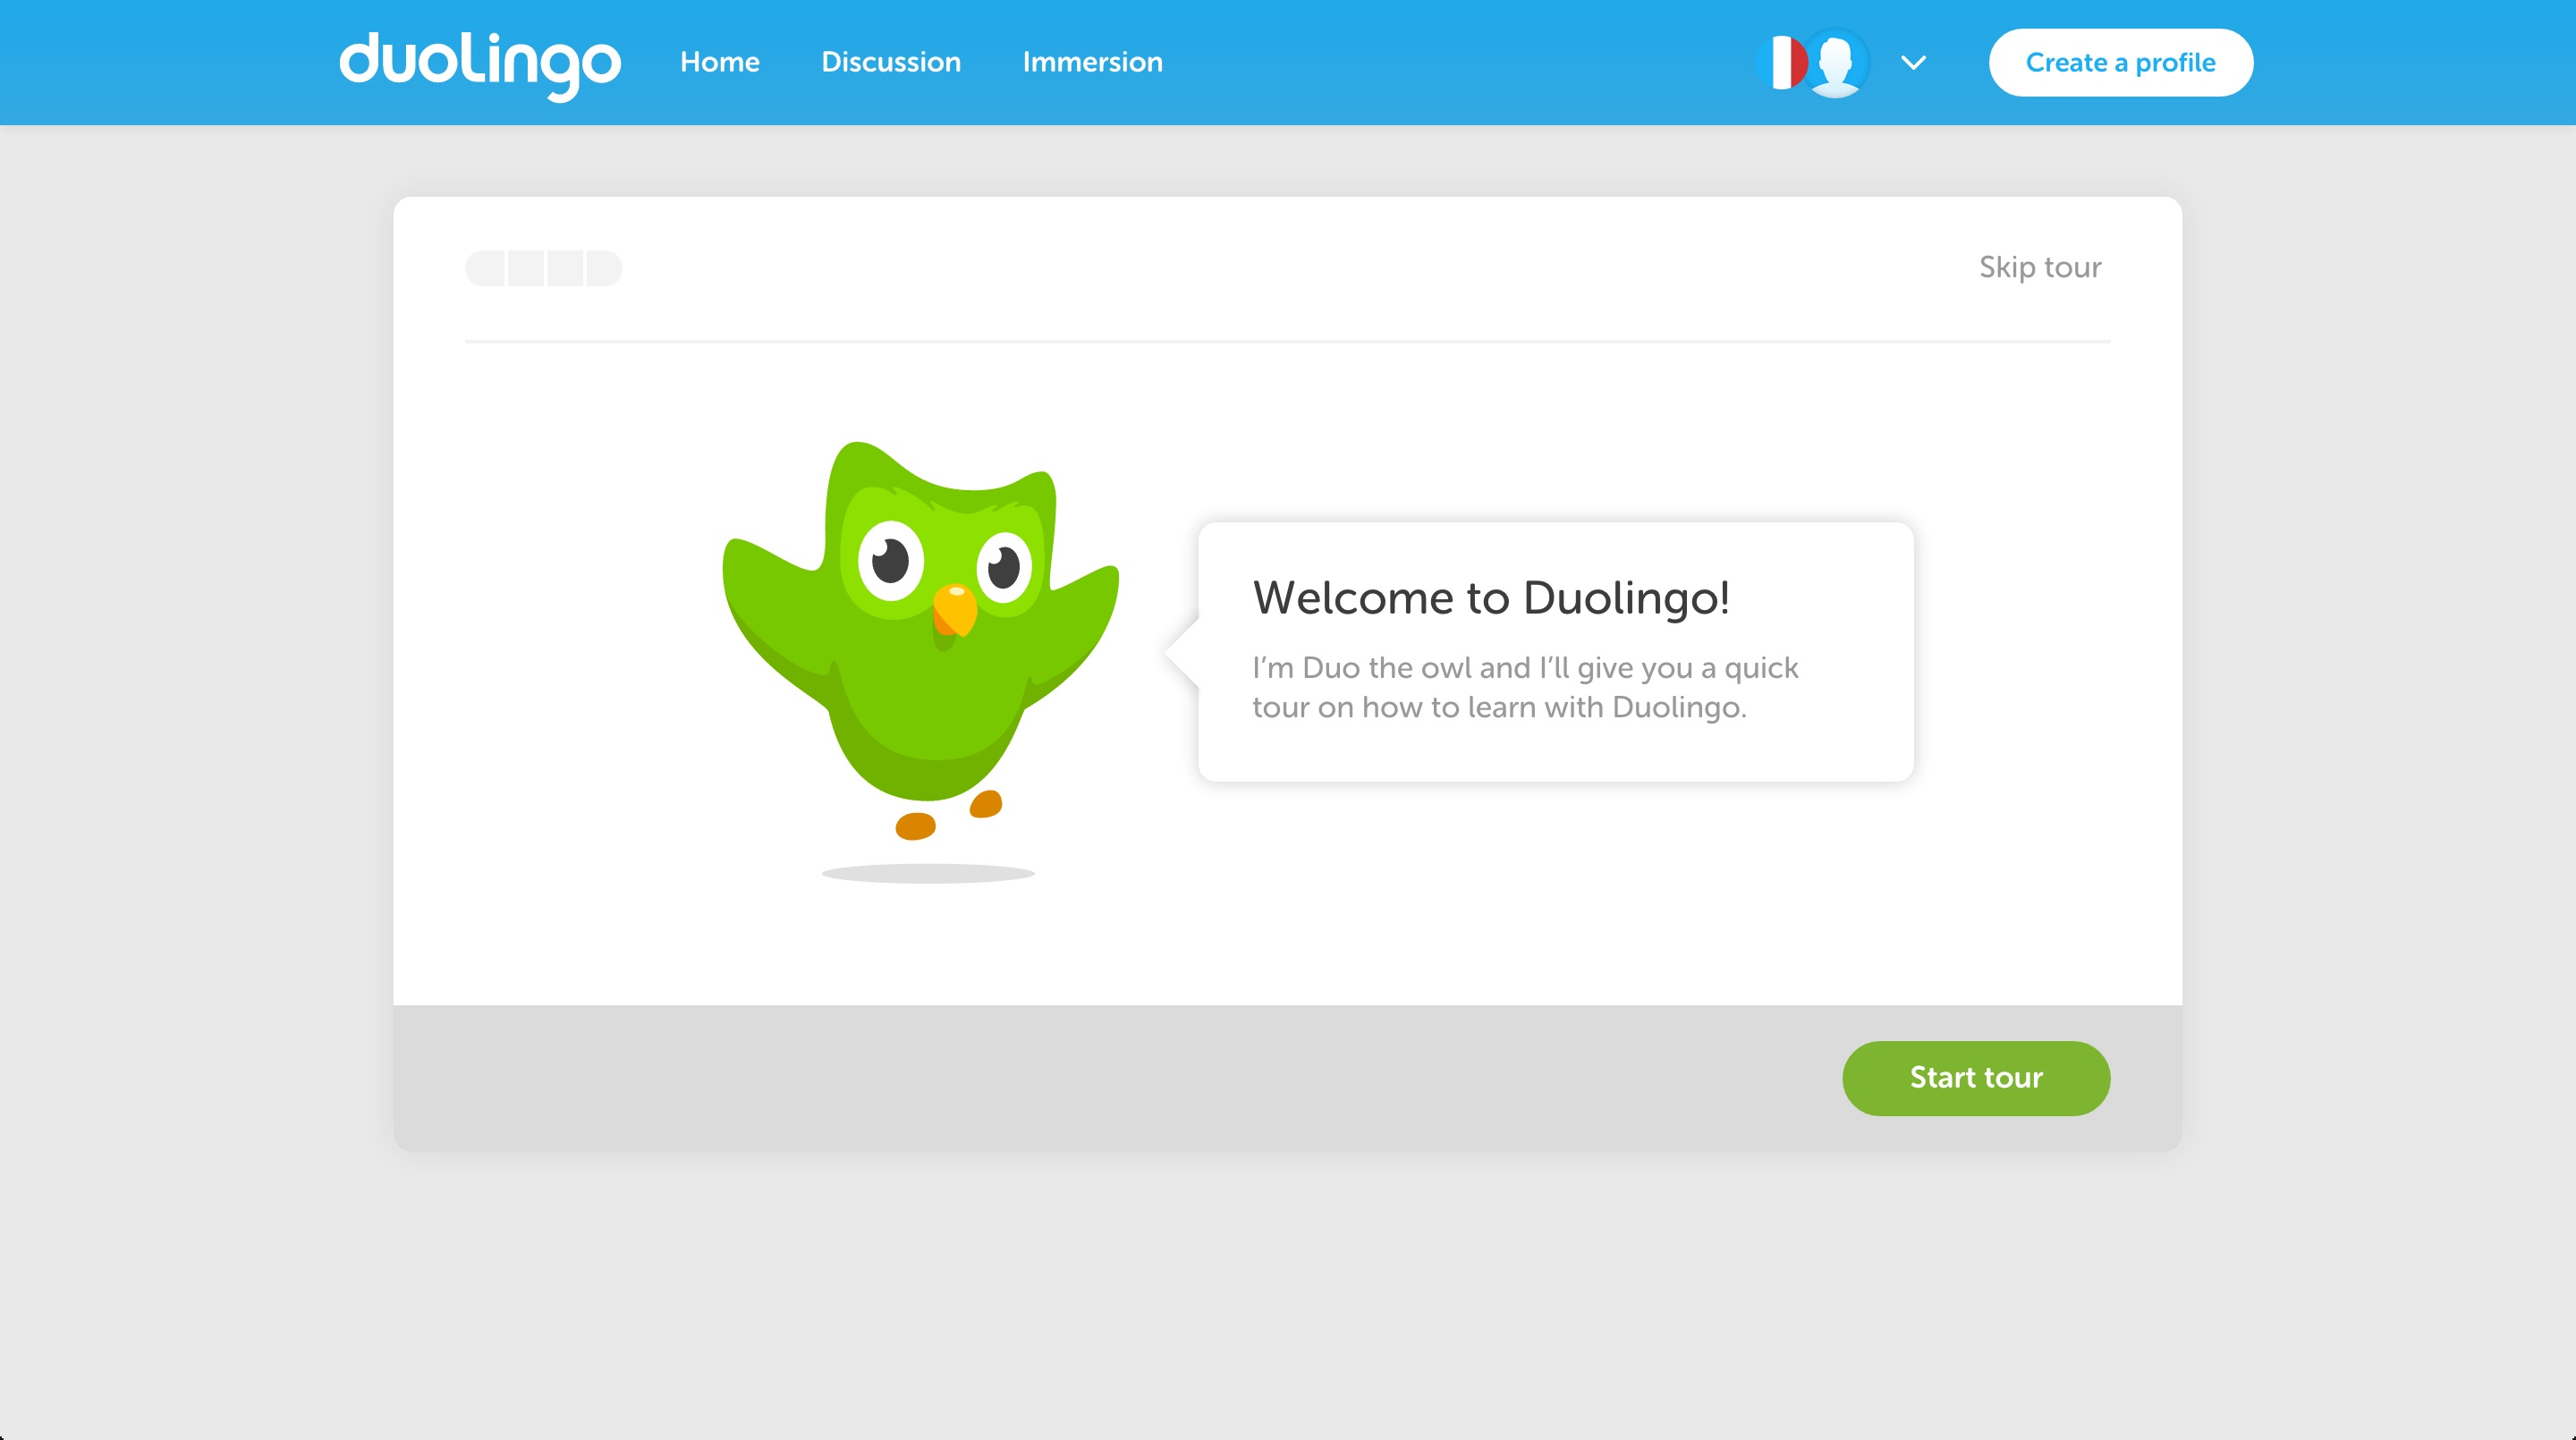 duolingo user onboarding step 3